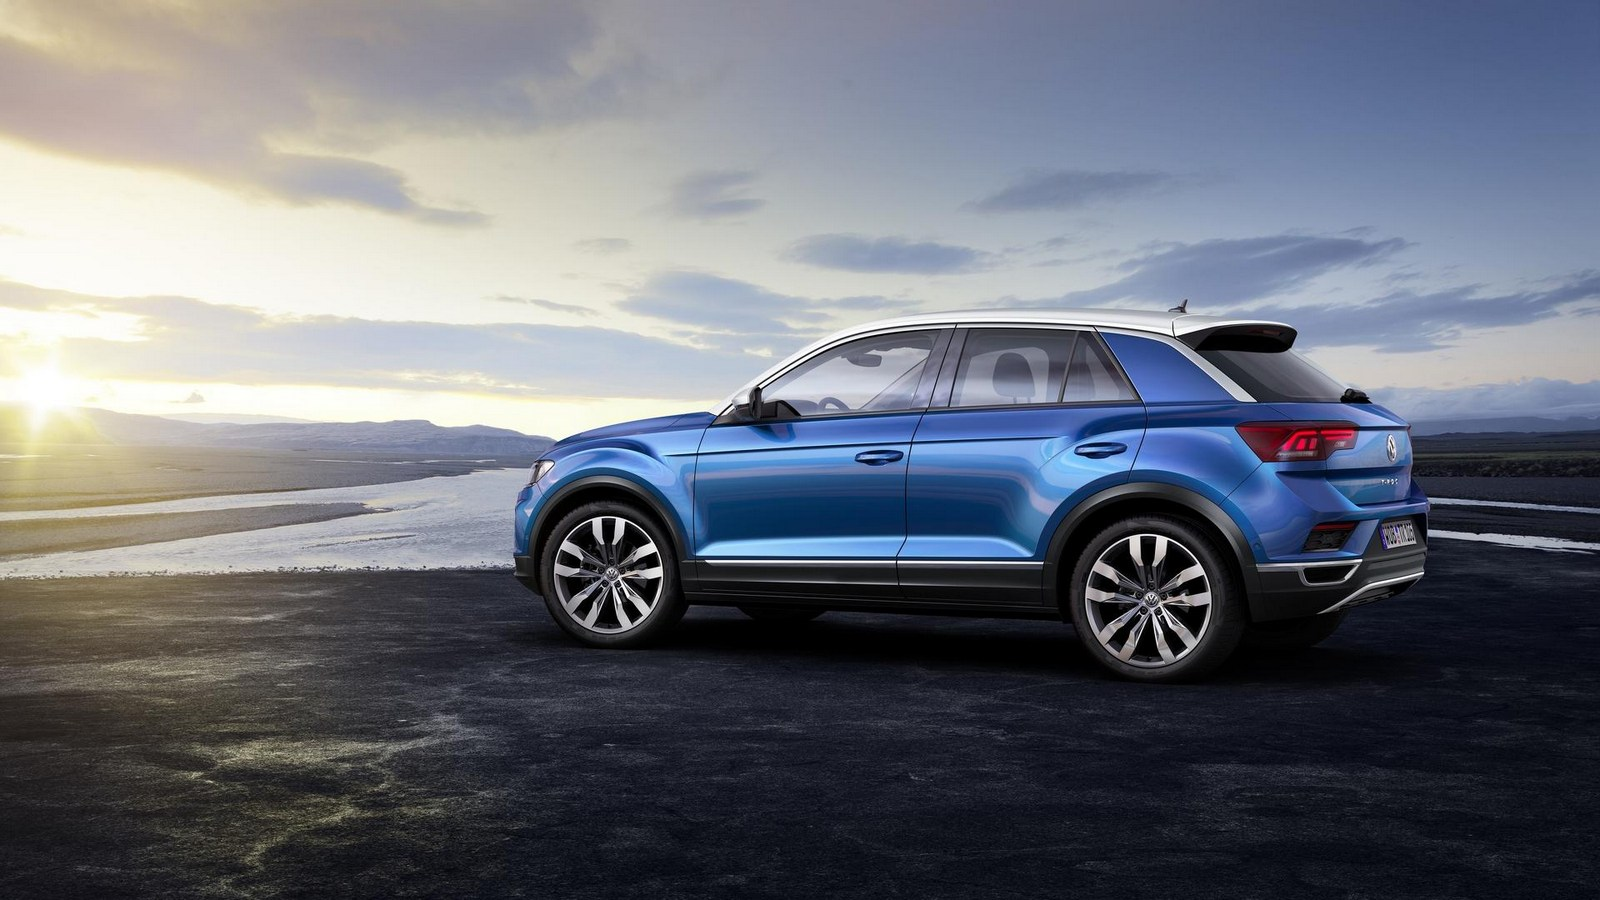 2018 Volkswagen T-Roc Is Big, Bold and Comes With 190 HP Engines - autoevolution